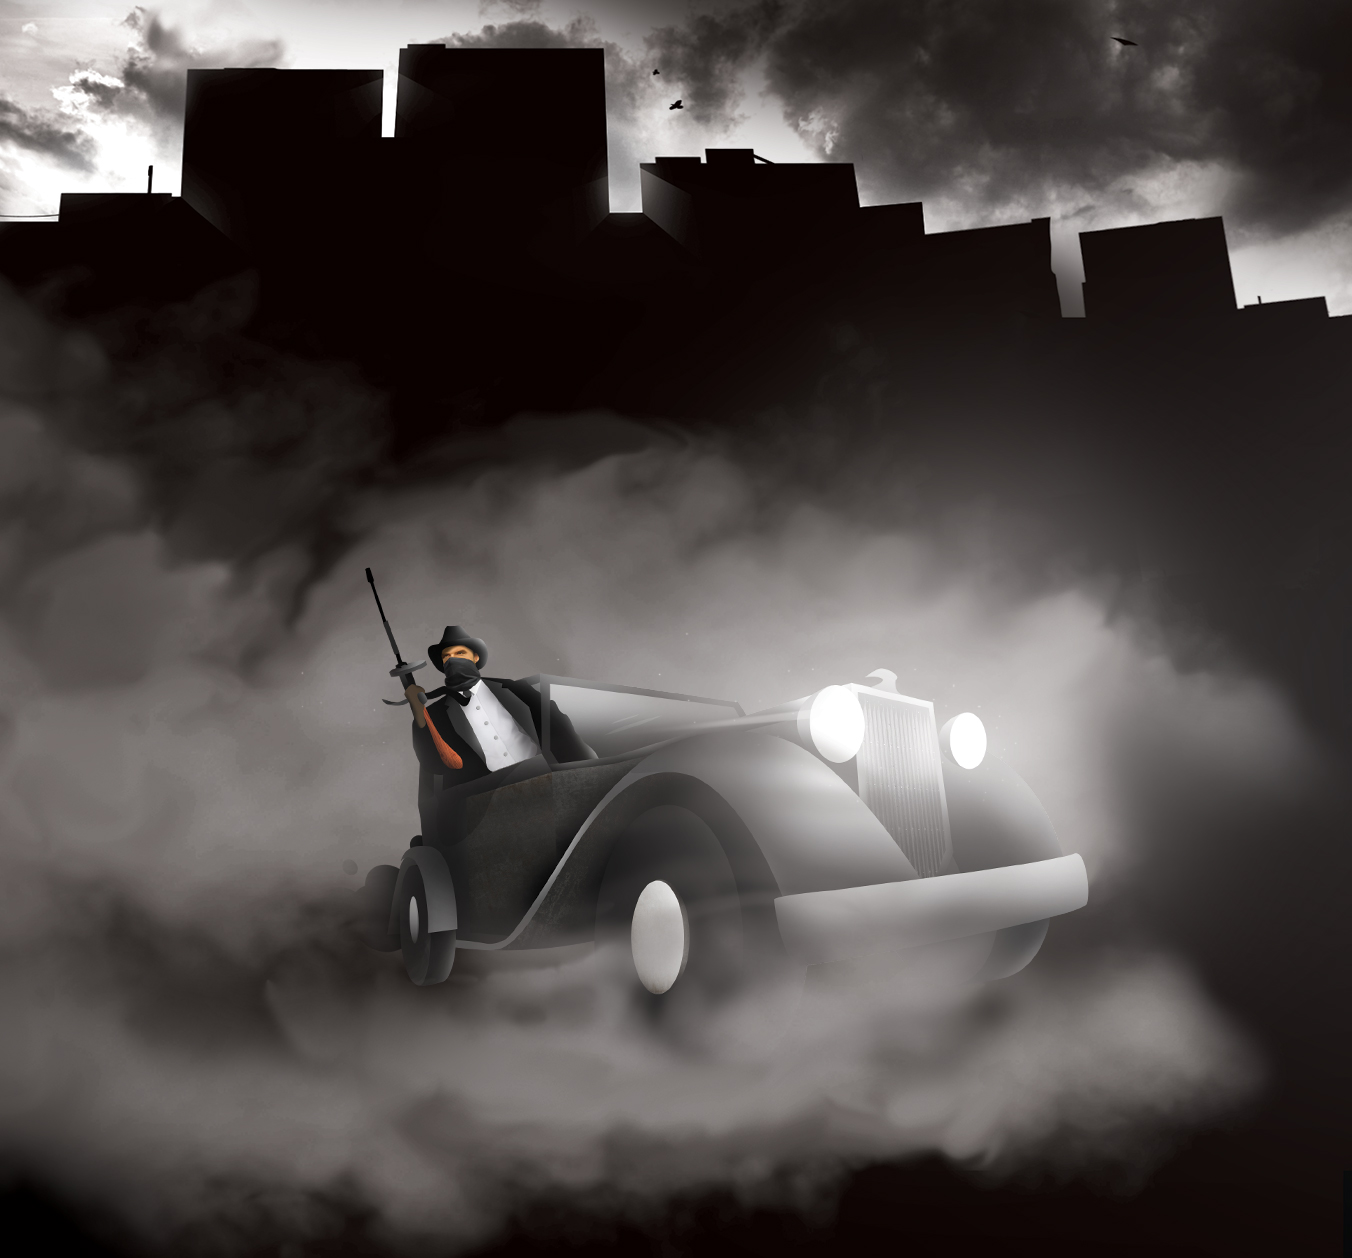 Mobster Metropolis - Drive-by image